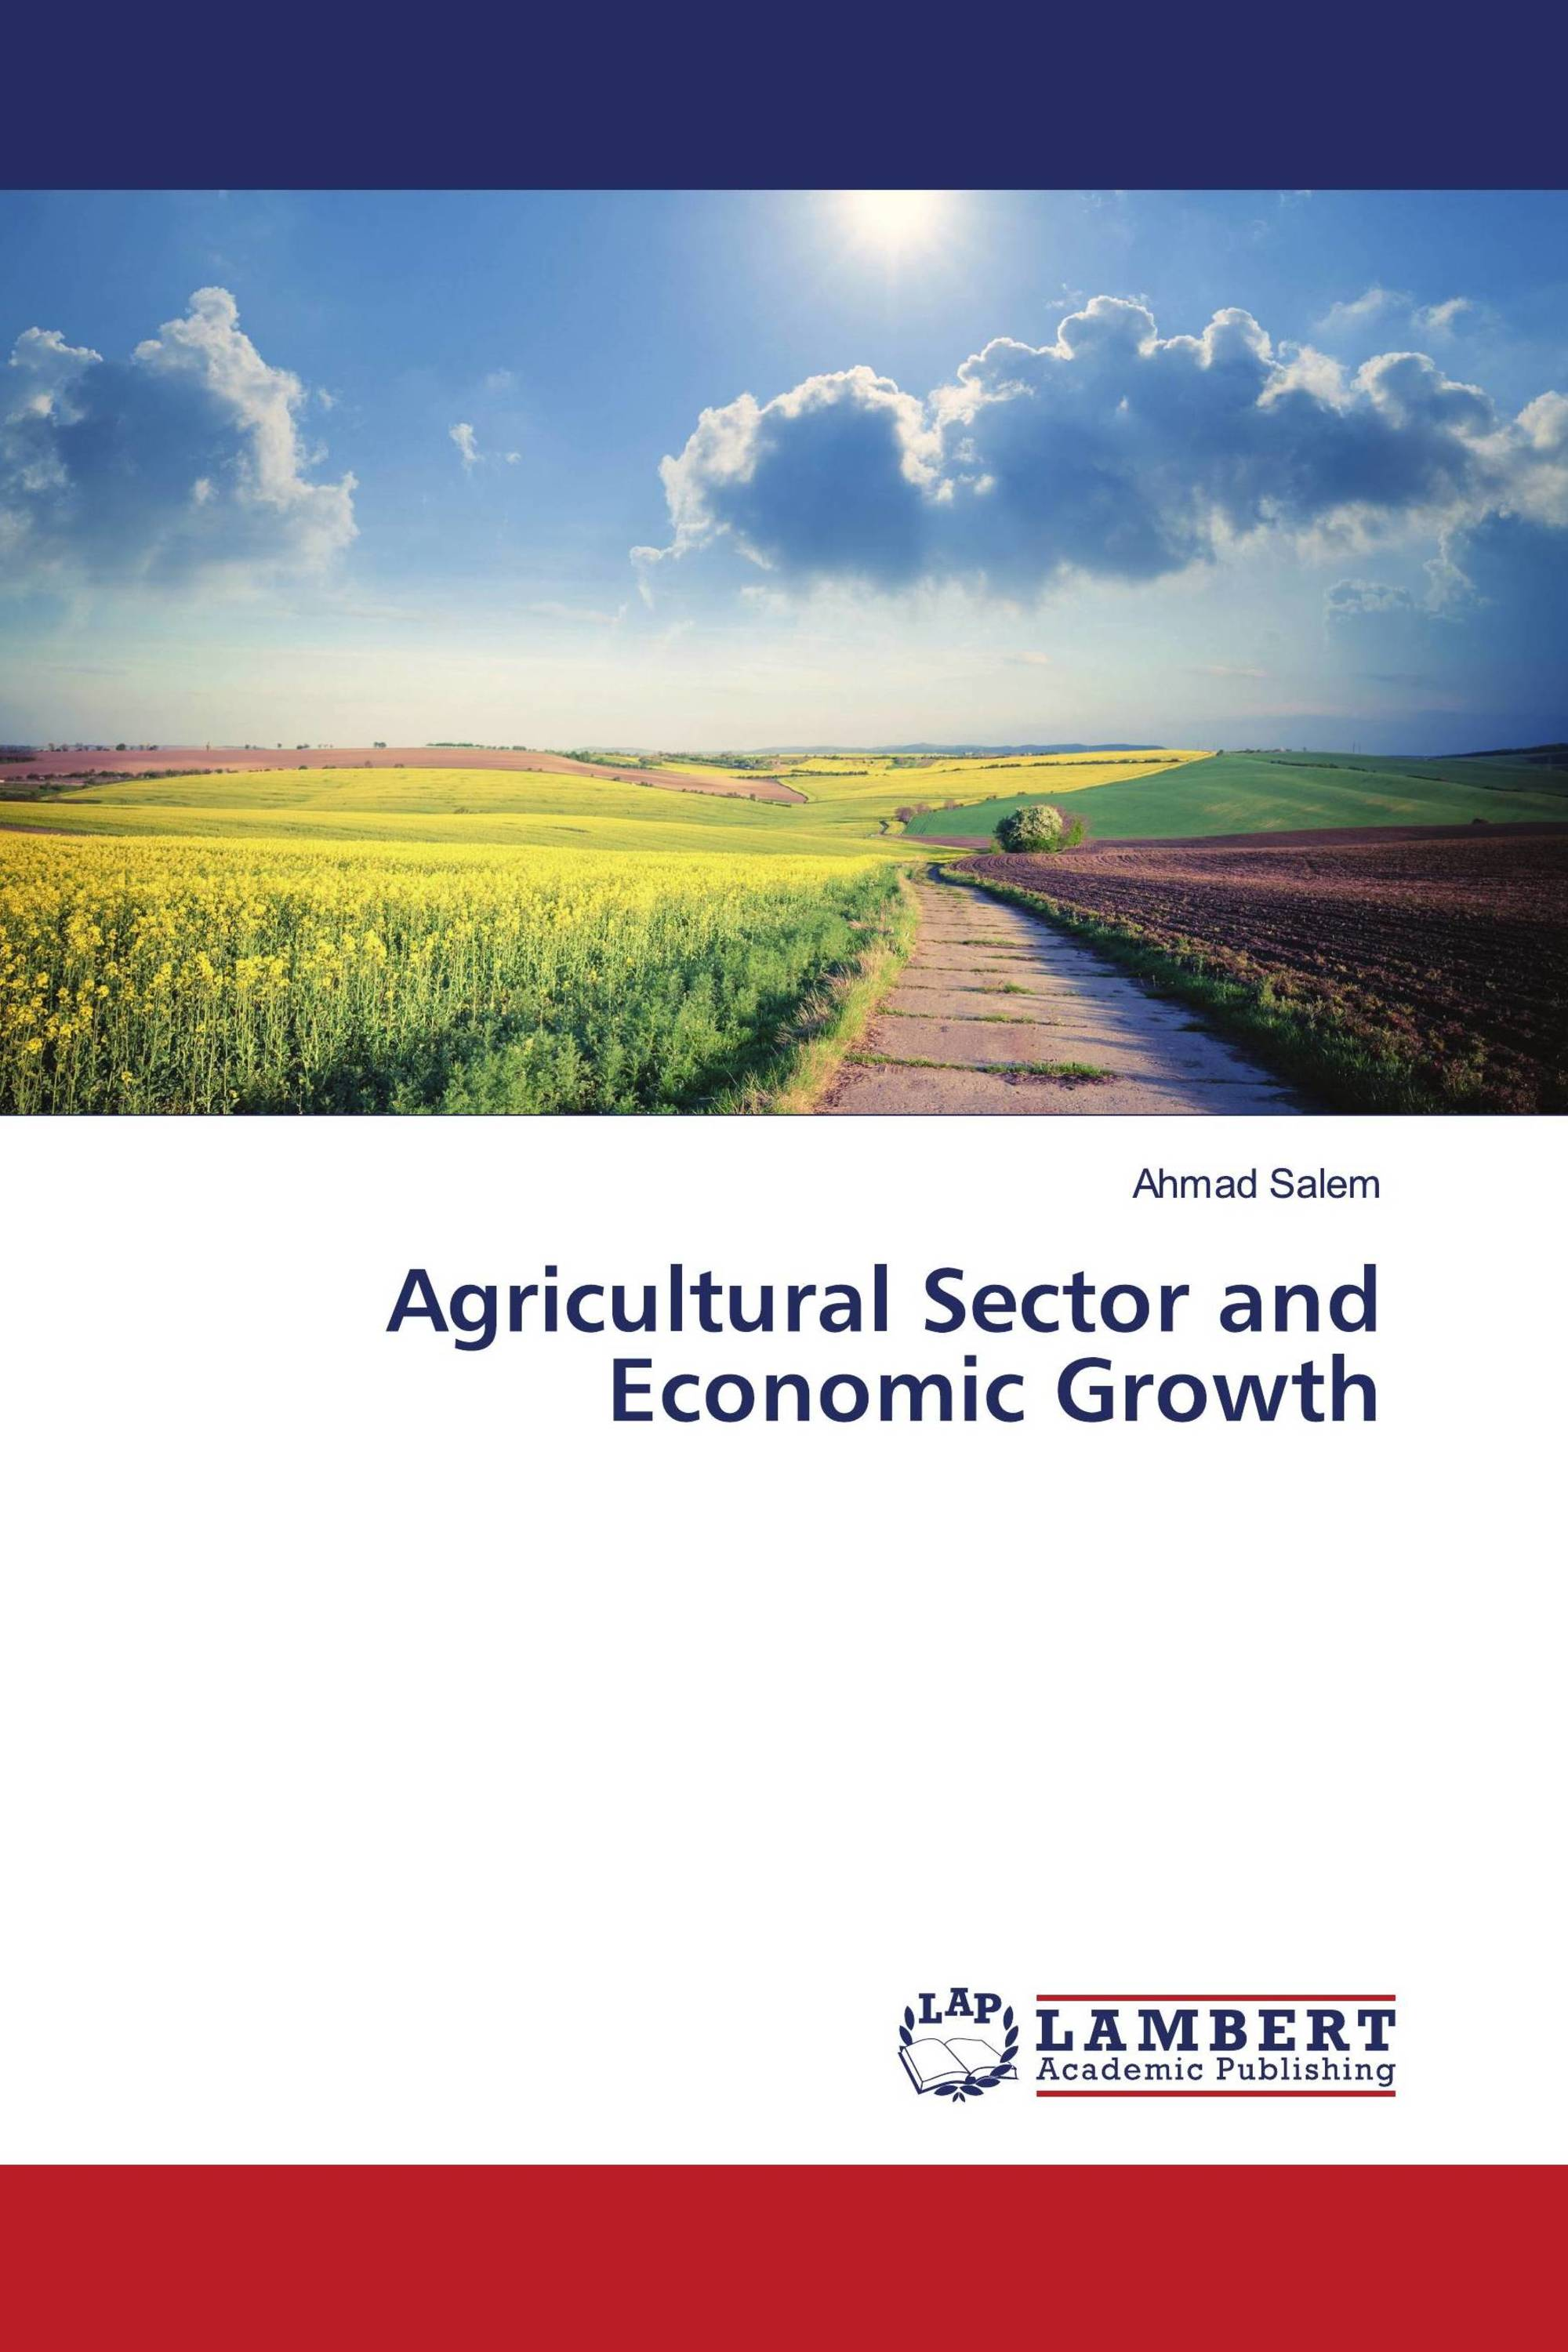 Agricultural Sector and Economic Growth